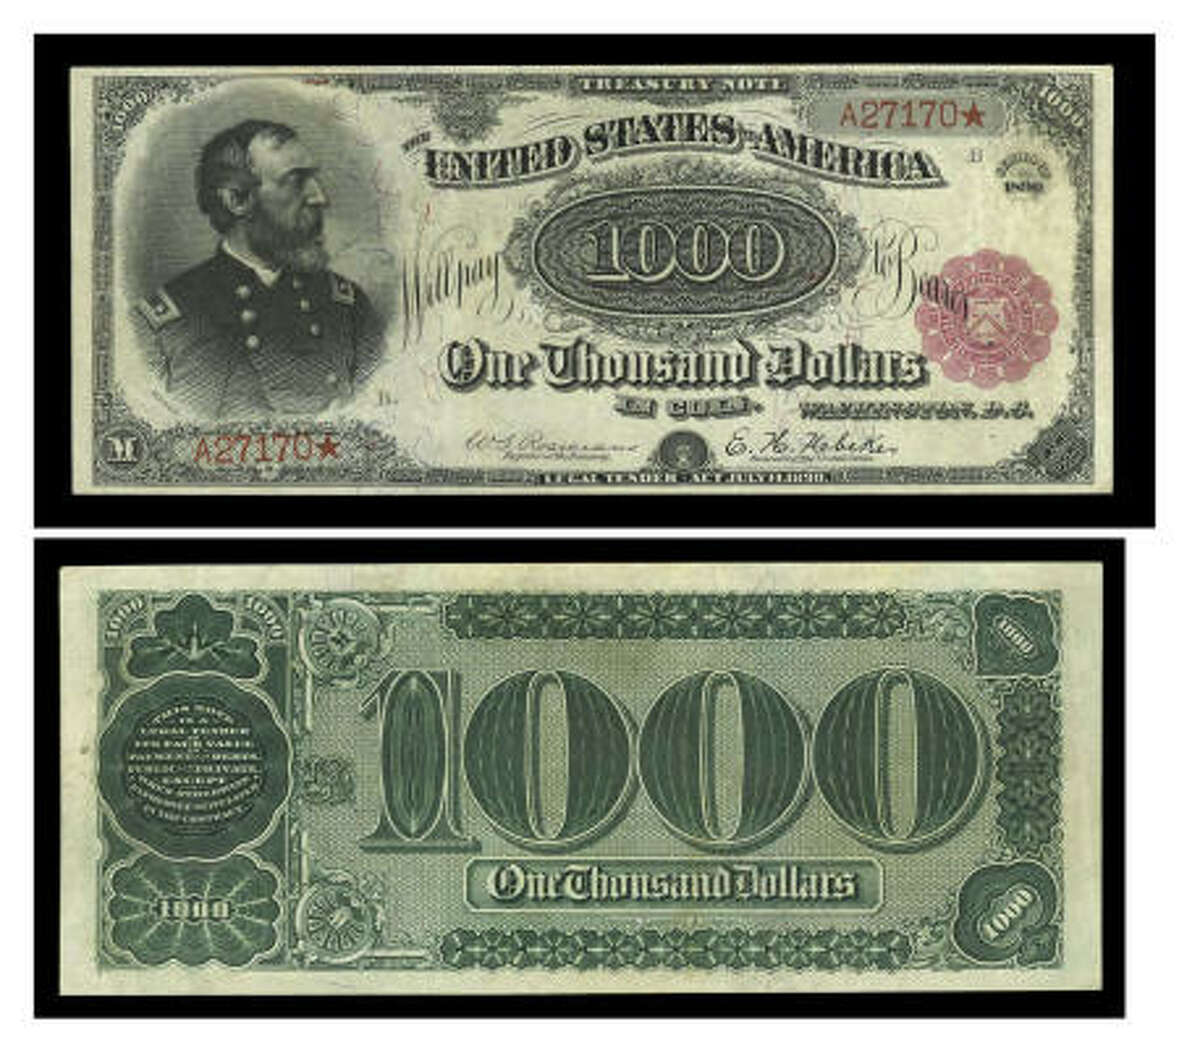 An undated photo shows the front and back of the $1,000 bill that is one of only two known of its type. It is unique because it has red-color Treasury Department seals printed on the front.